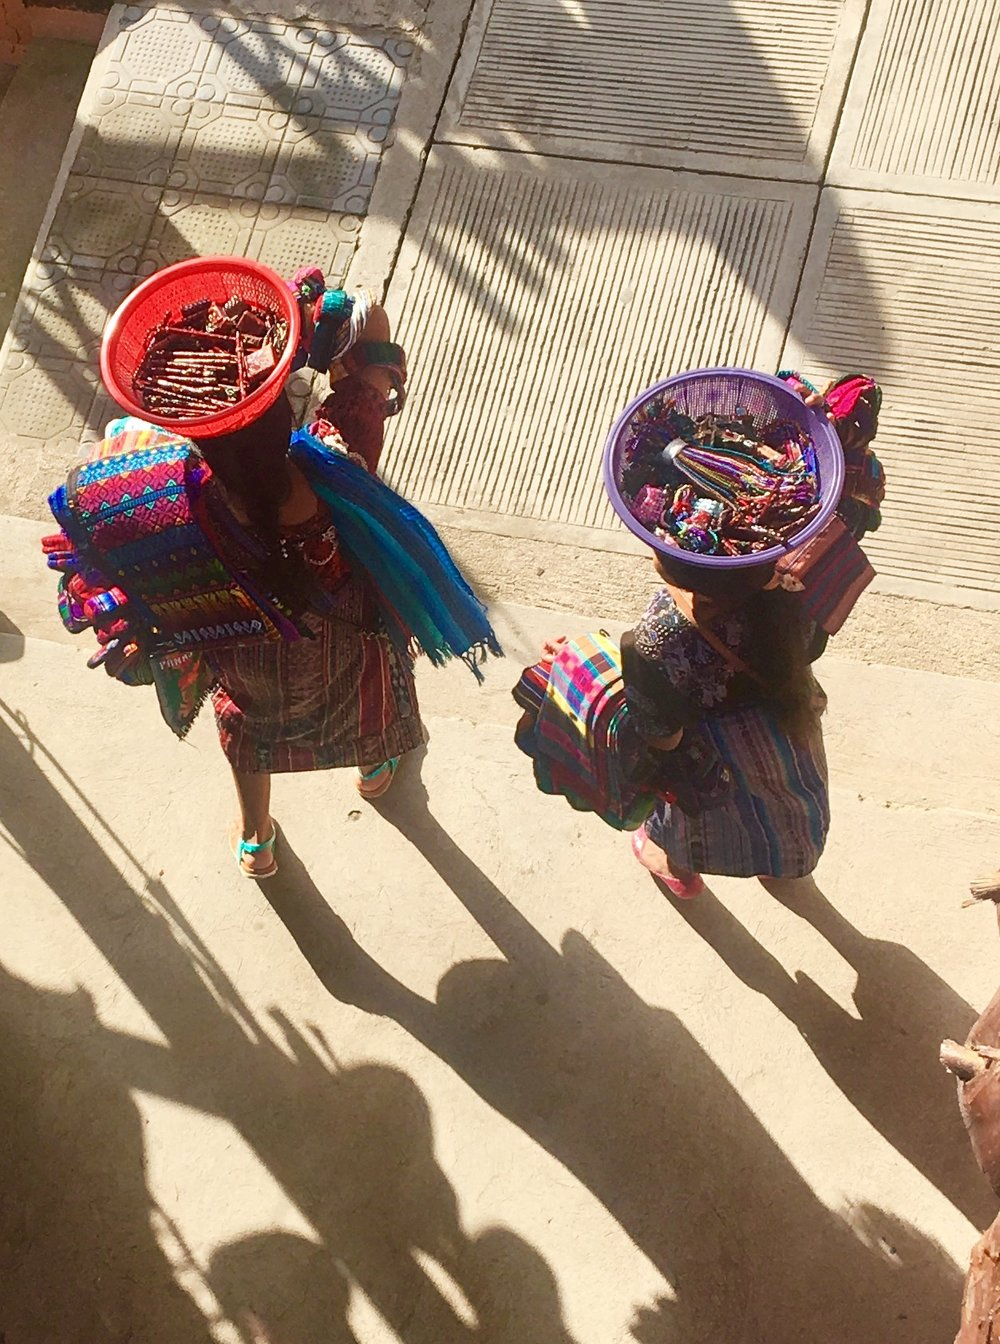 Women, carrying baskets on their heads.